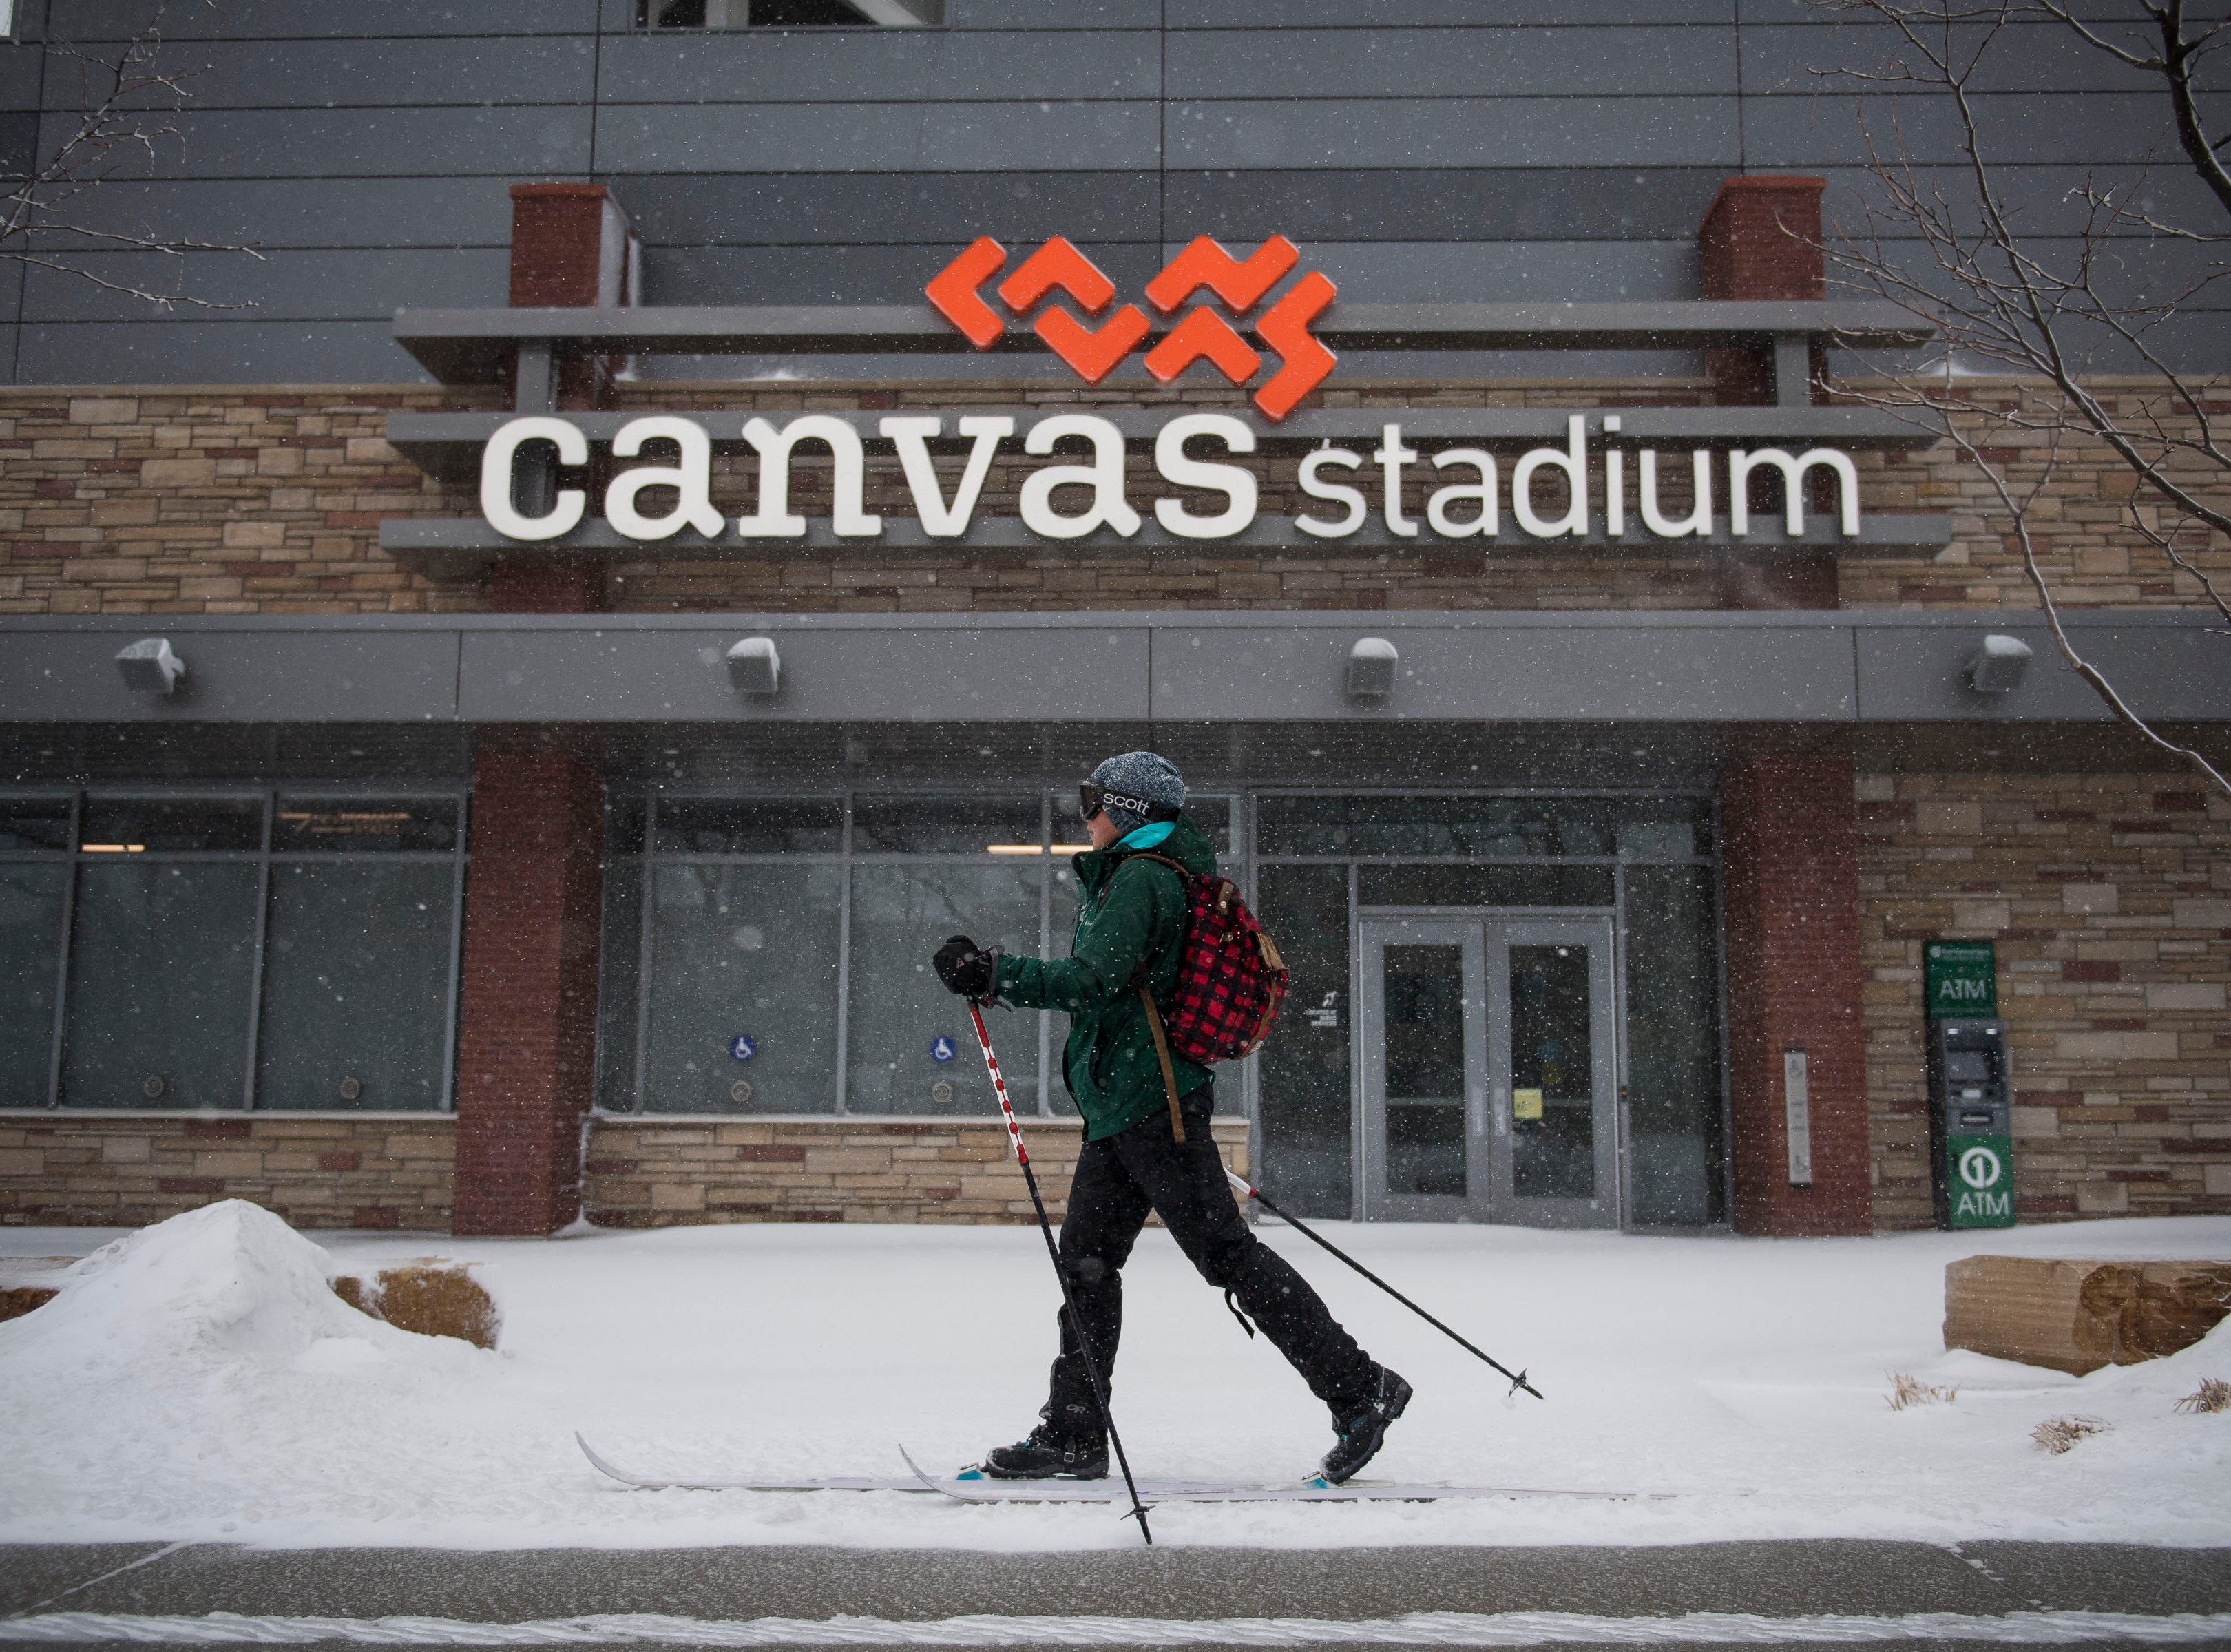 CSU art major Saskia Becker cross-country skis past Canvas Stadium on Wednesday, March 13, 2019, in Fort Collins, Colo.